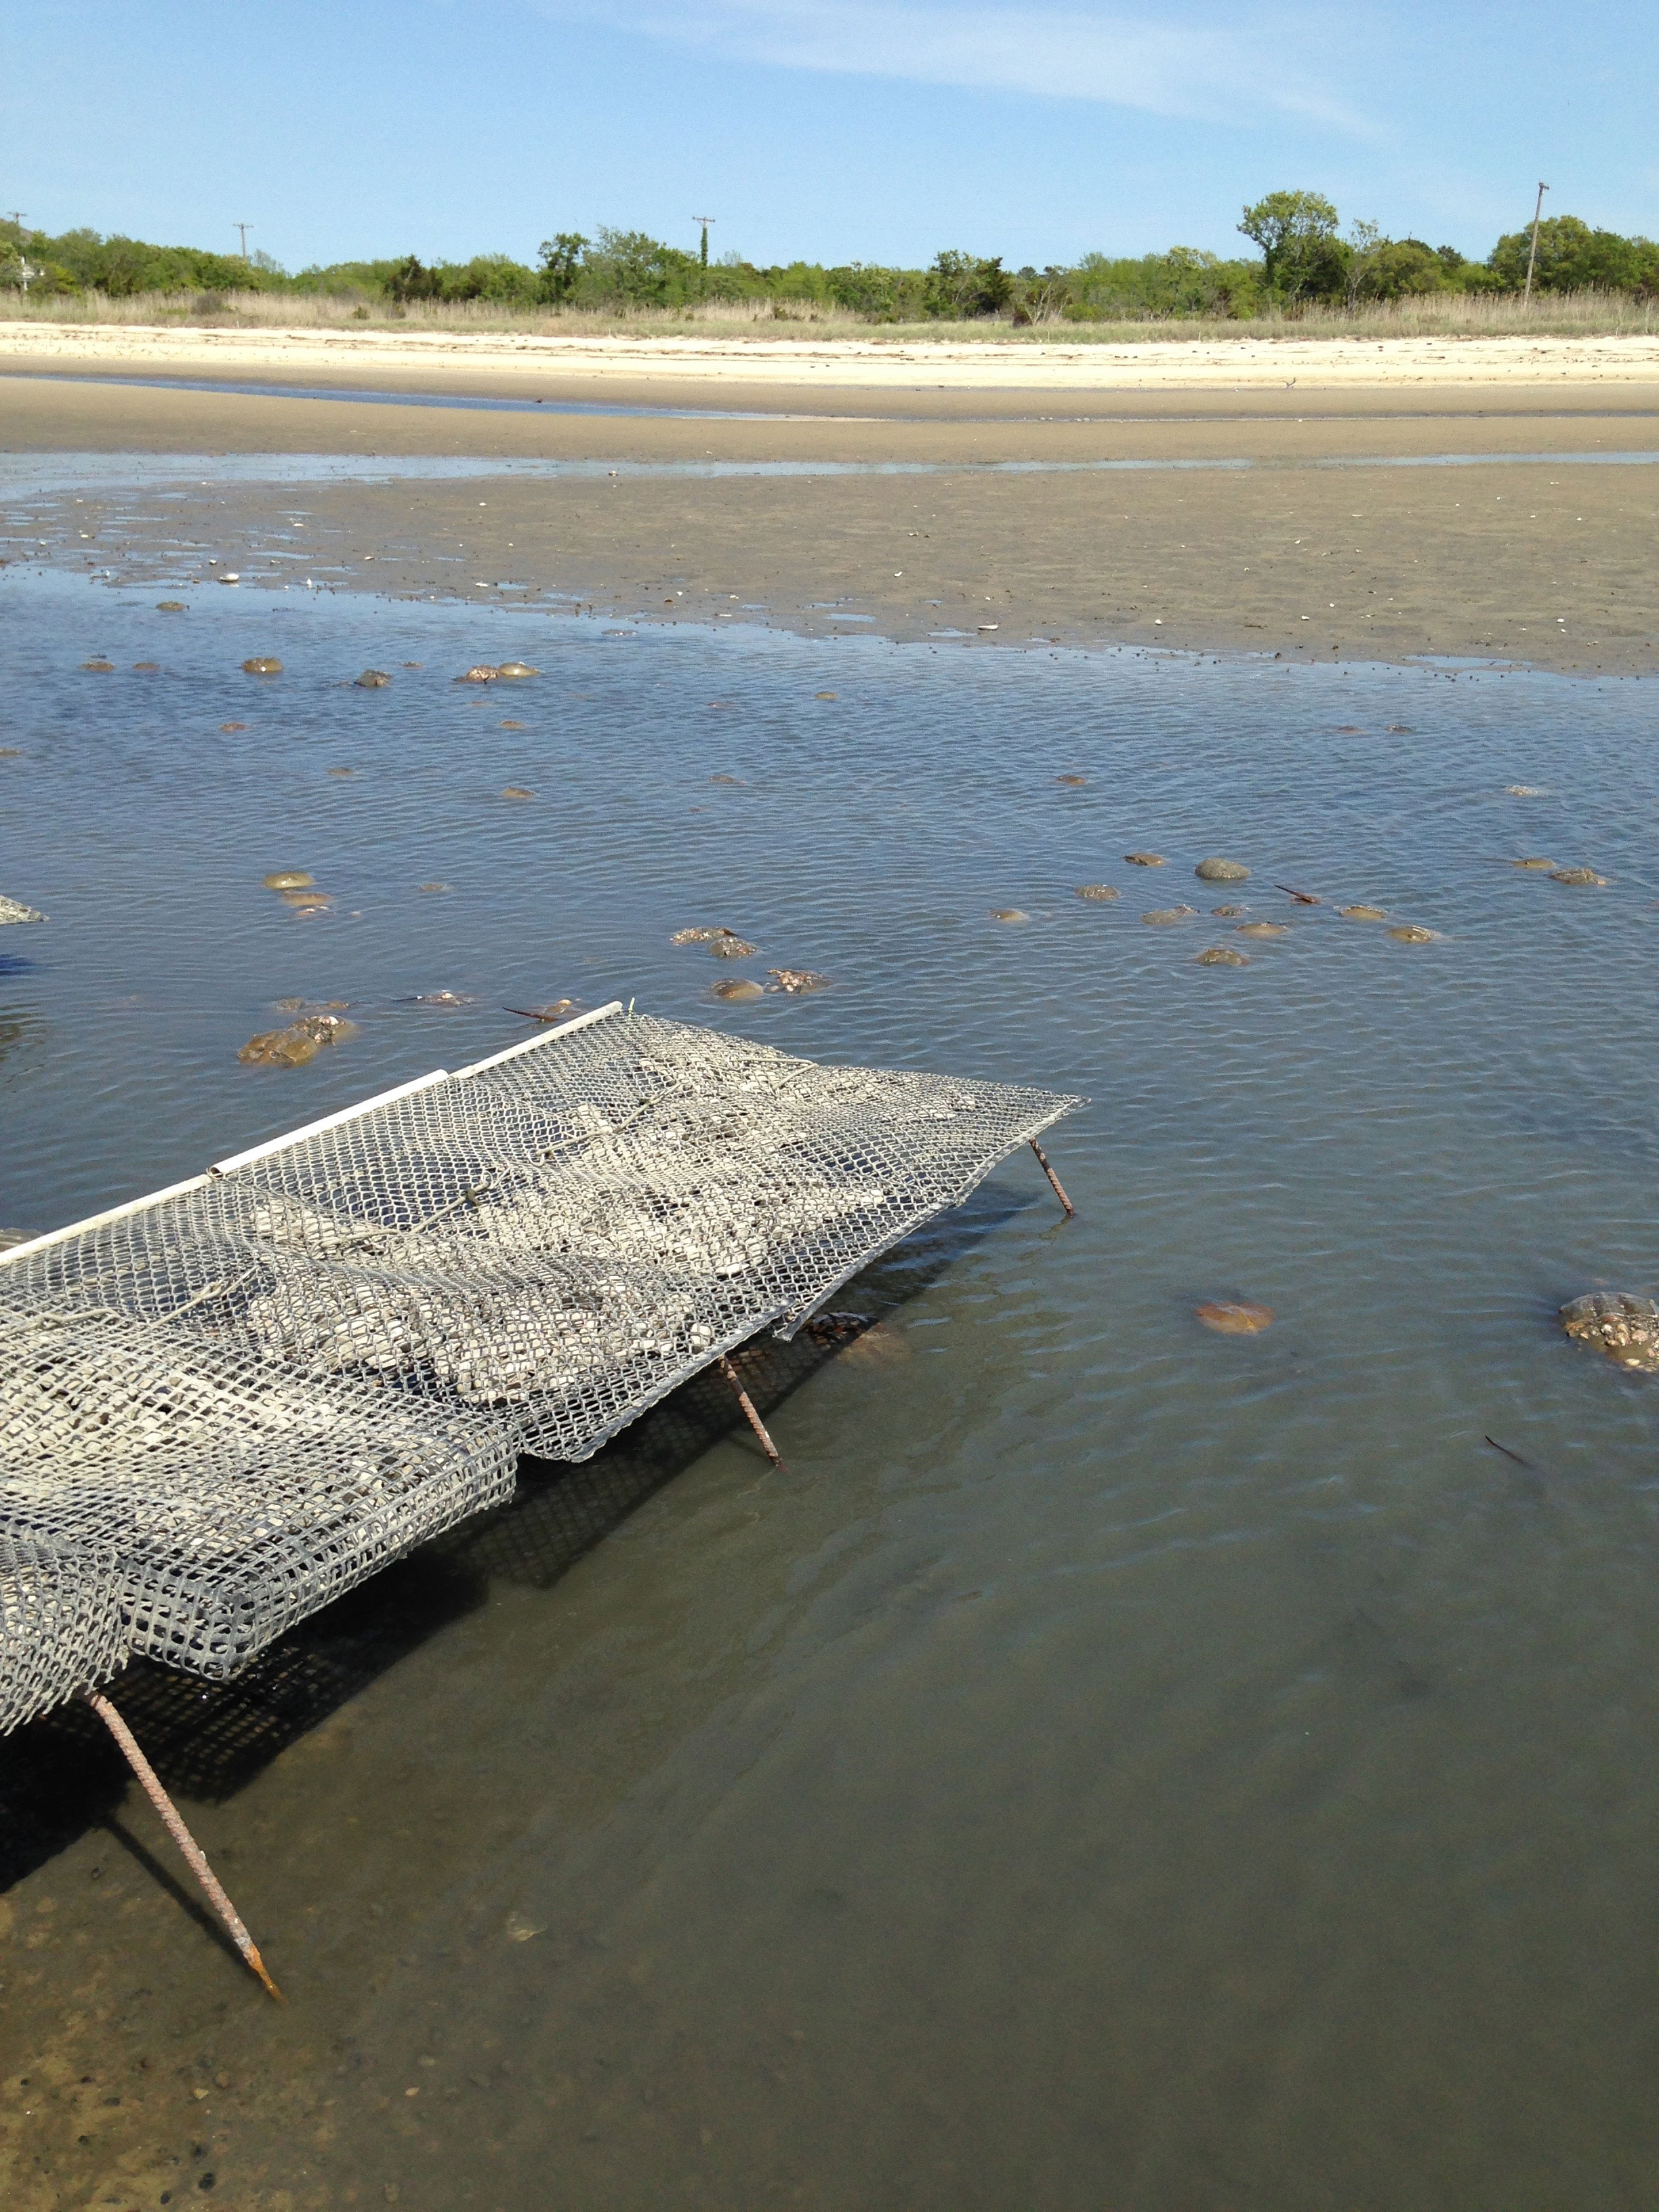 Crabs milling around oyster farm racks, with beach spawning habitat in the background